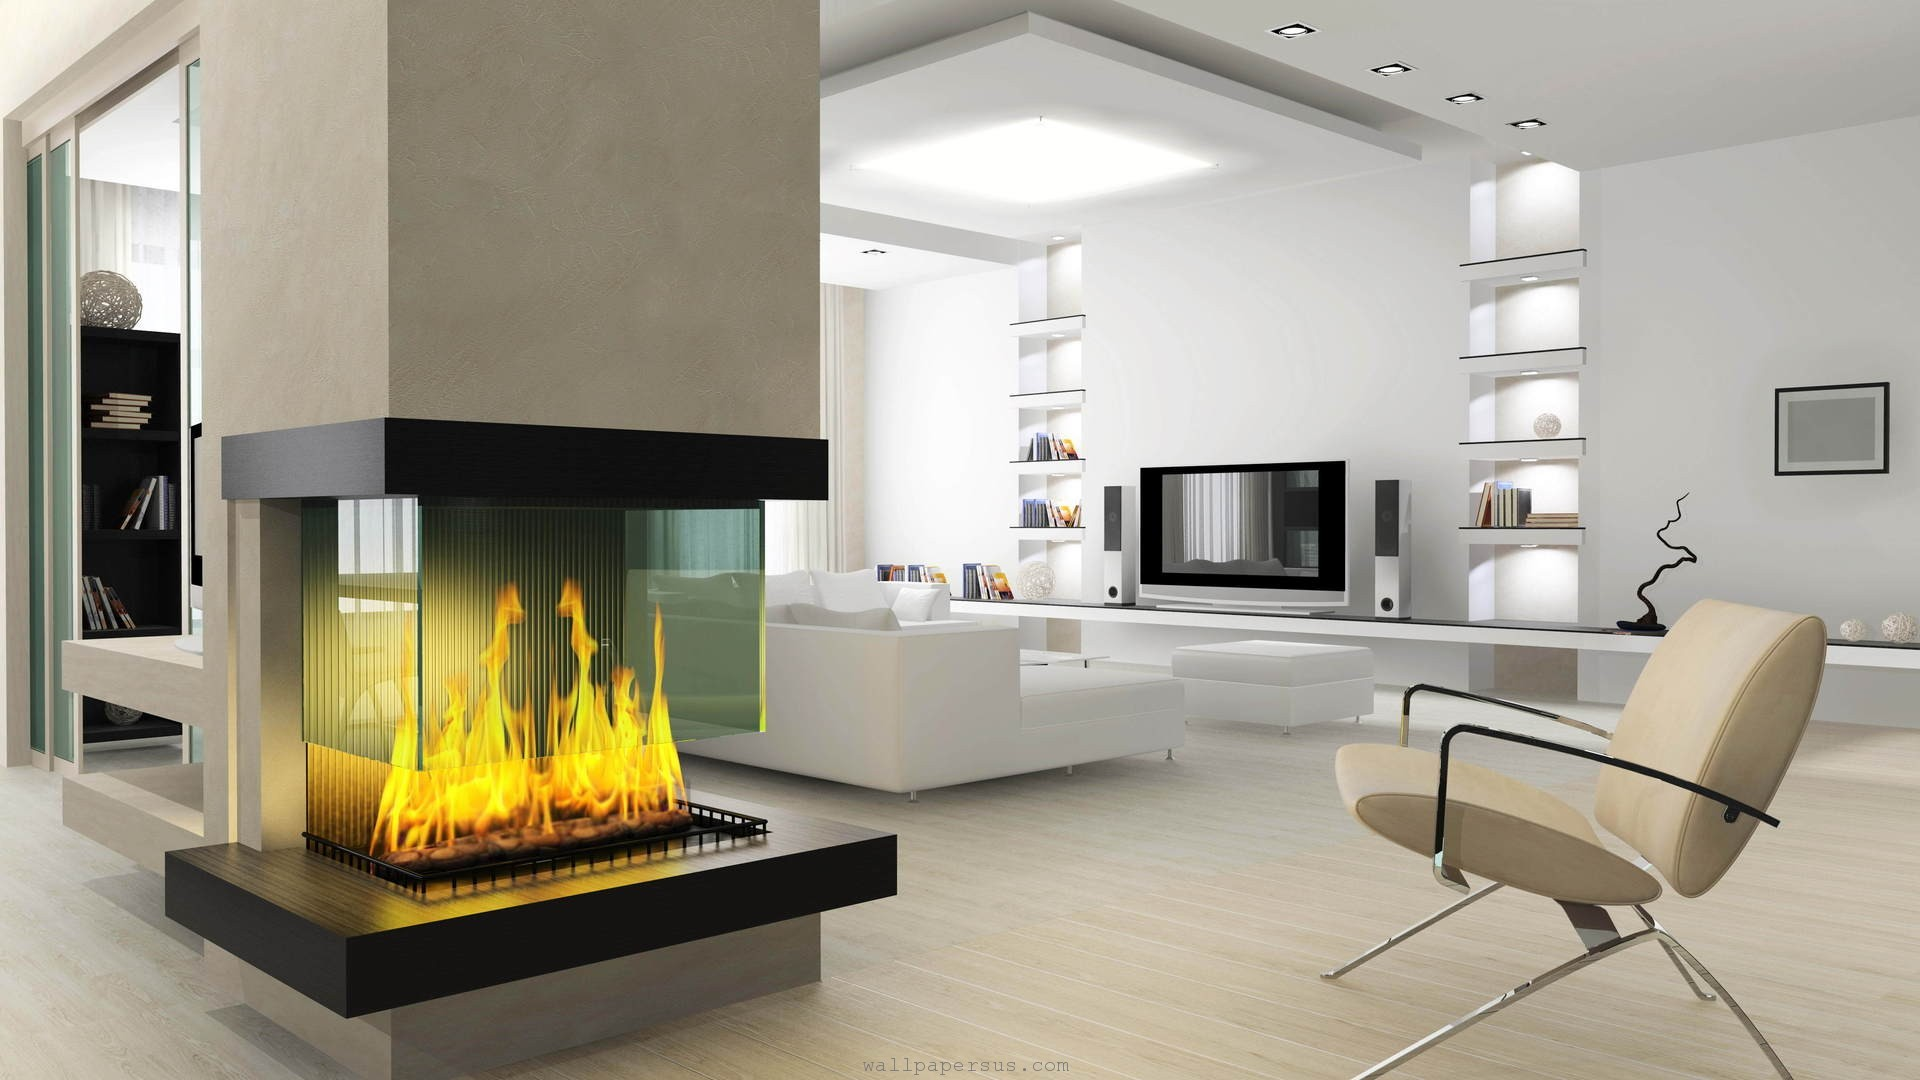 Fireplace-in-Living-Room-wallpaper-wp3605576